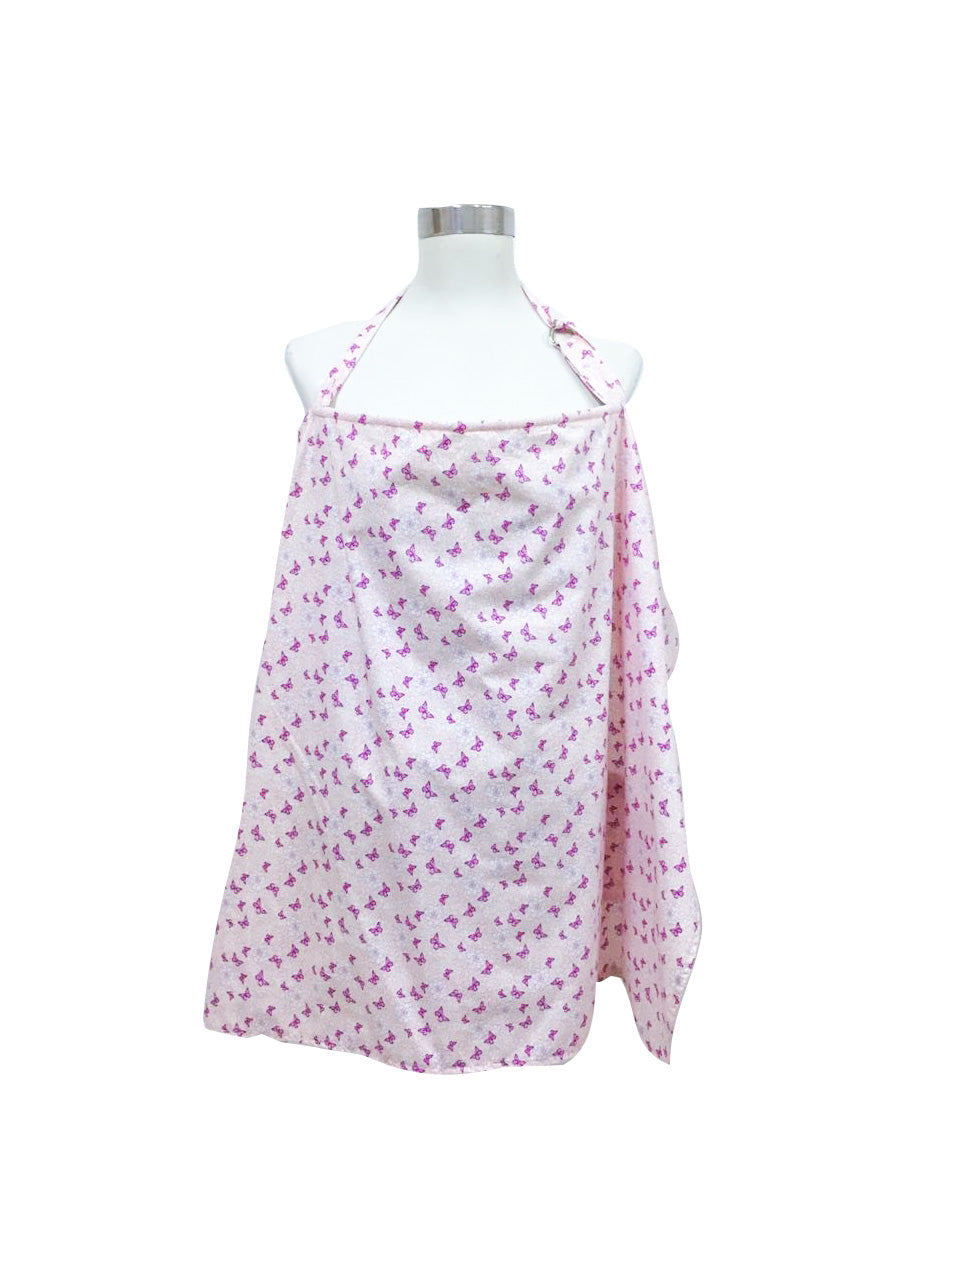 Purple Butterflies Nursing Cover